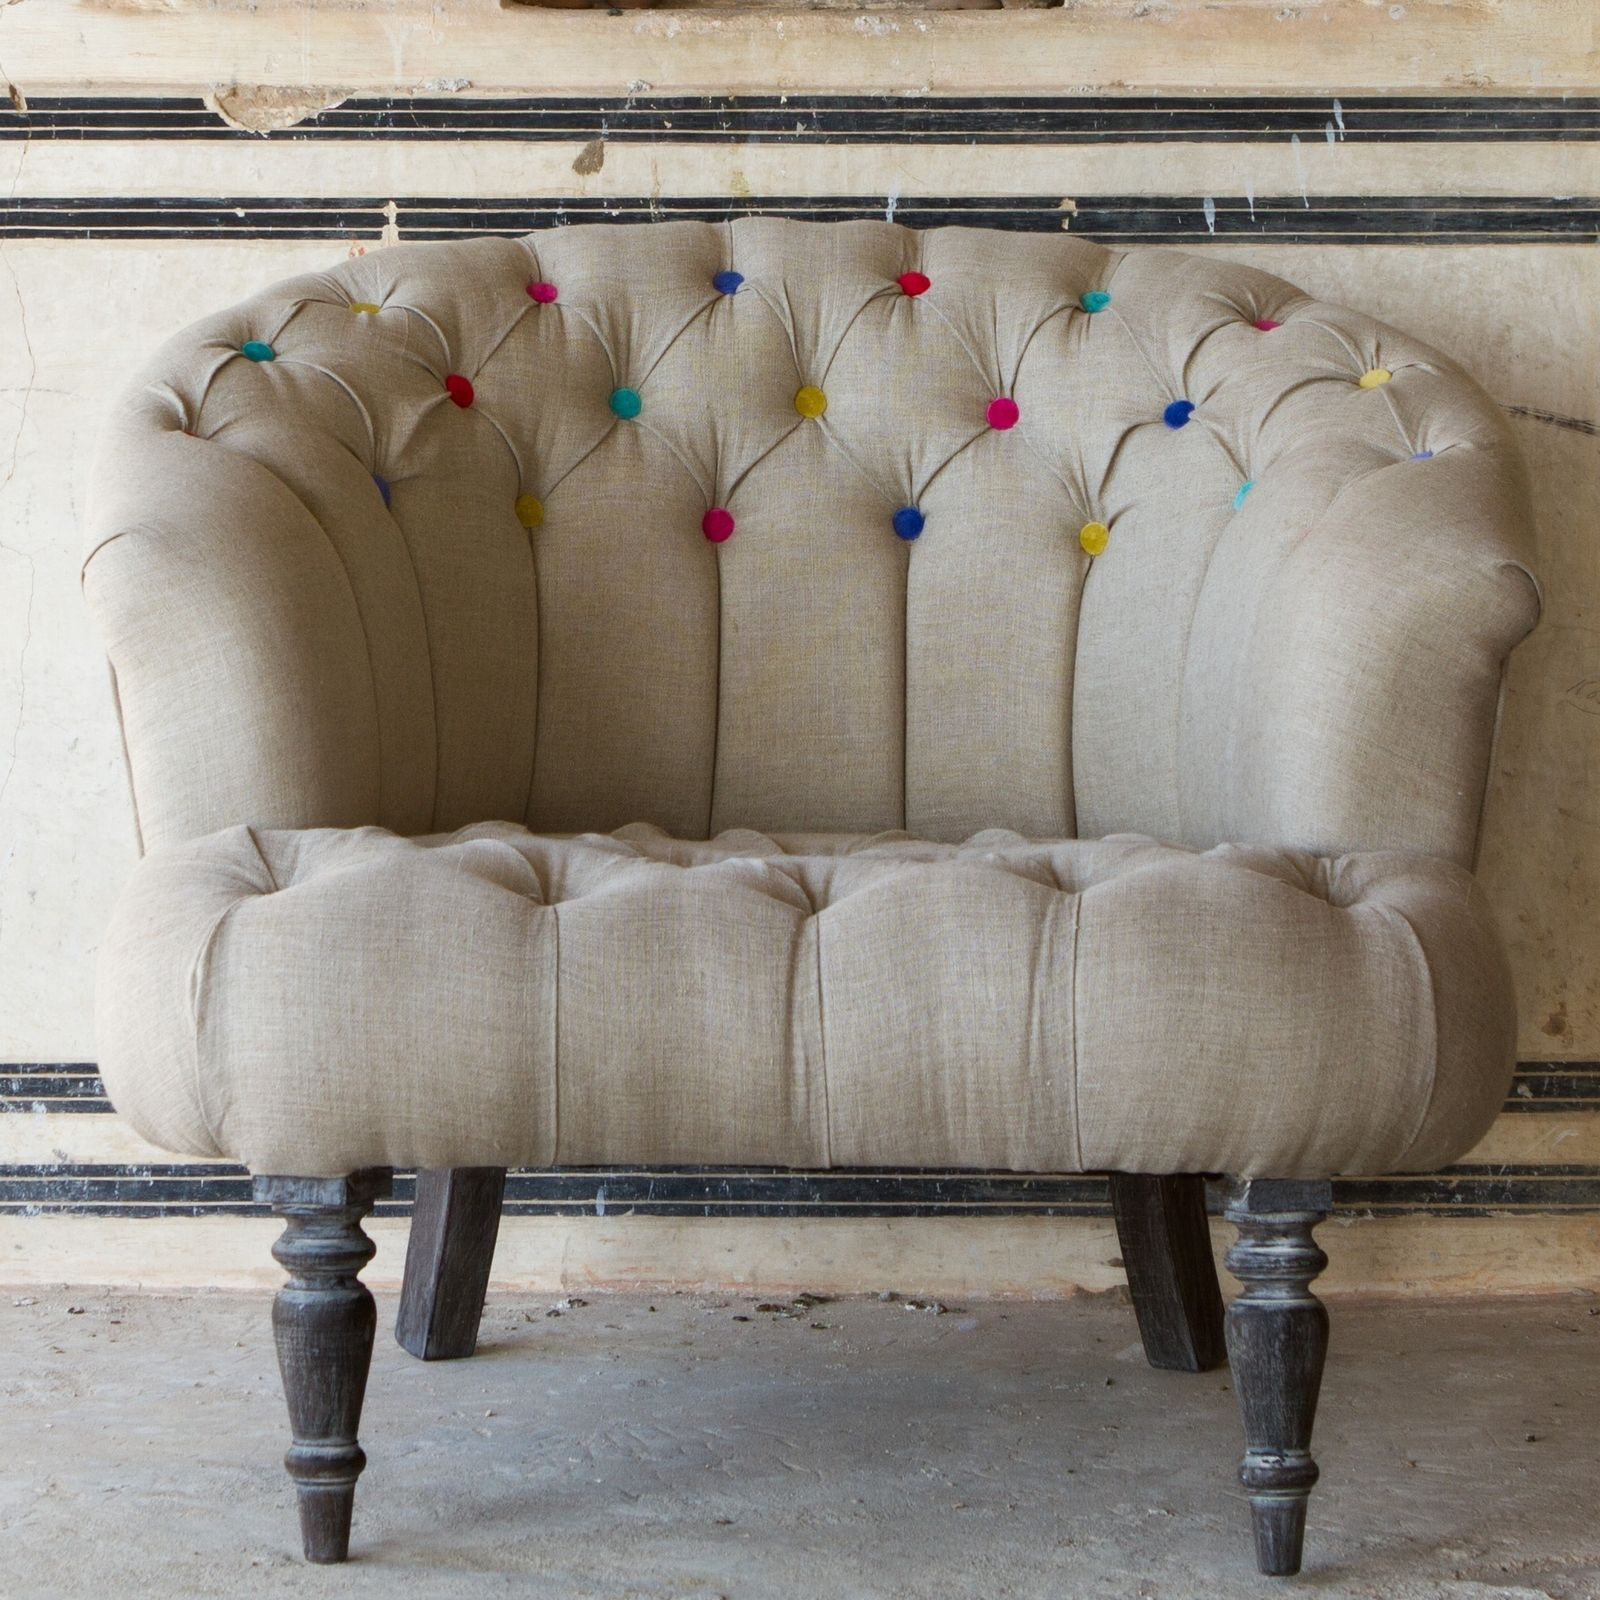 Linen Buttonback Round Chair   Natural / Multicolour Buttons   Ruby Star  Traders   A$1900